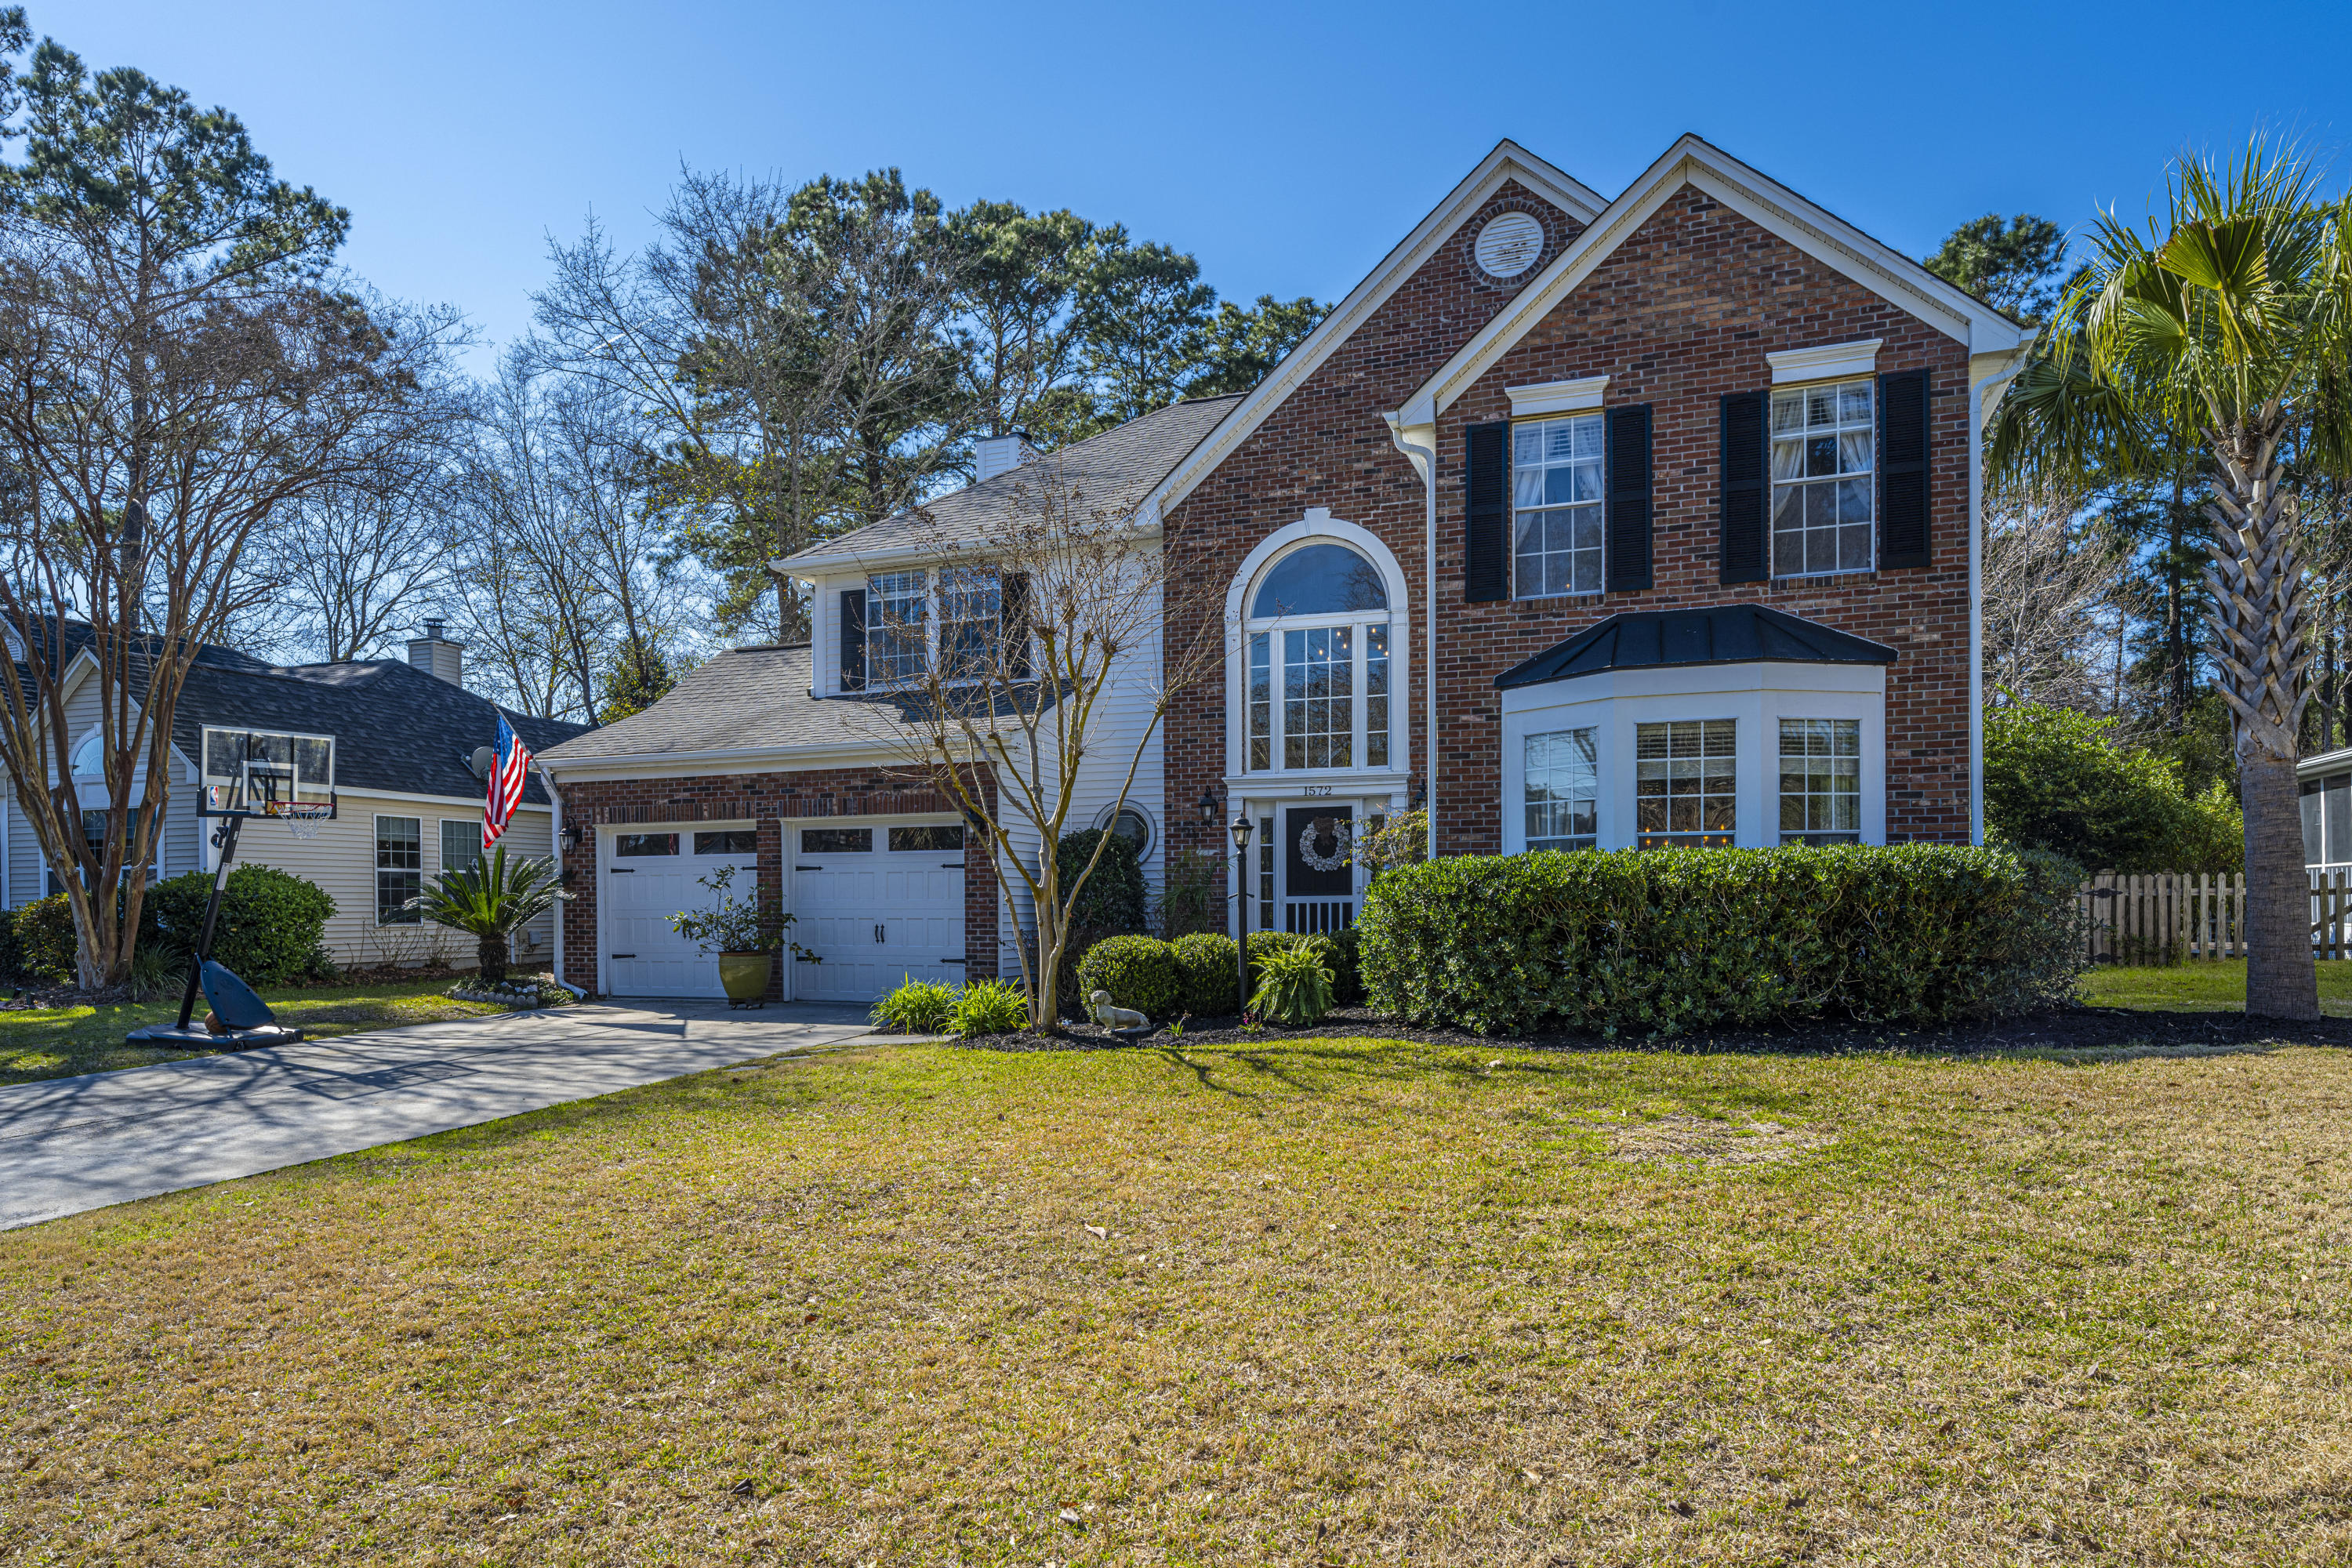 Cypress Pointe Homes For Sale - 1572 Cypress Pointe, Mount Pleasant, SC - 14